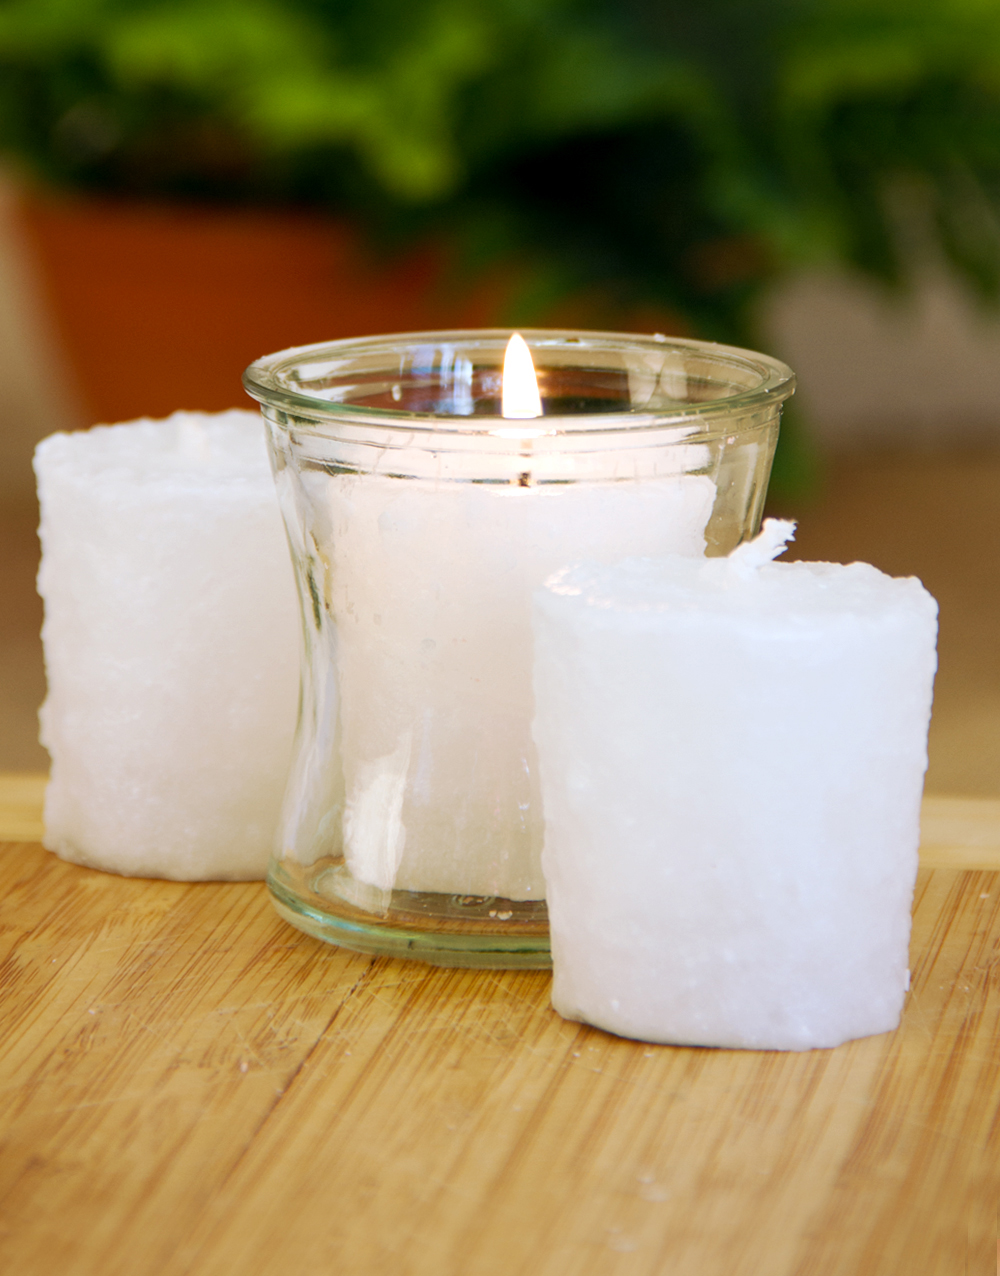 Creamy Vanilla Bean 3 Pack Votive Candles